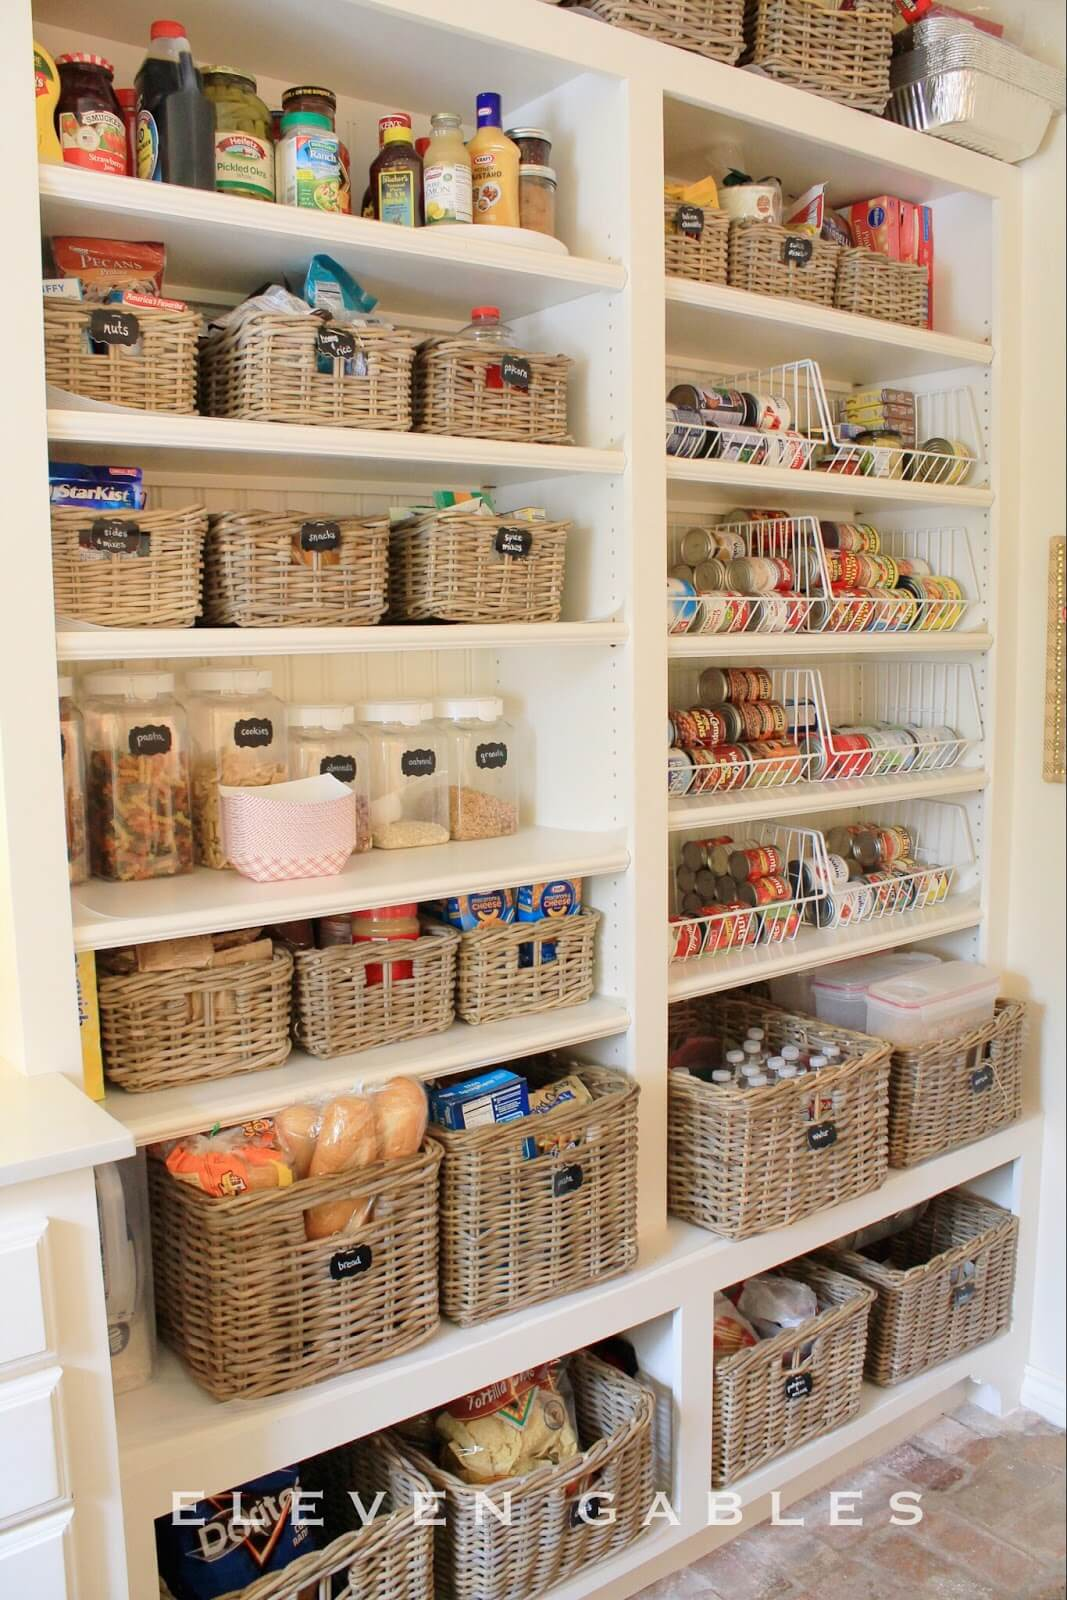 Lots of Square Baskets on Shelves